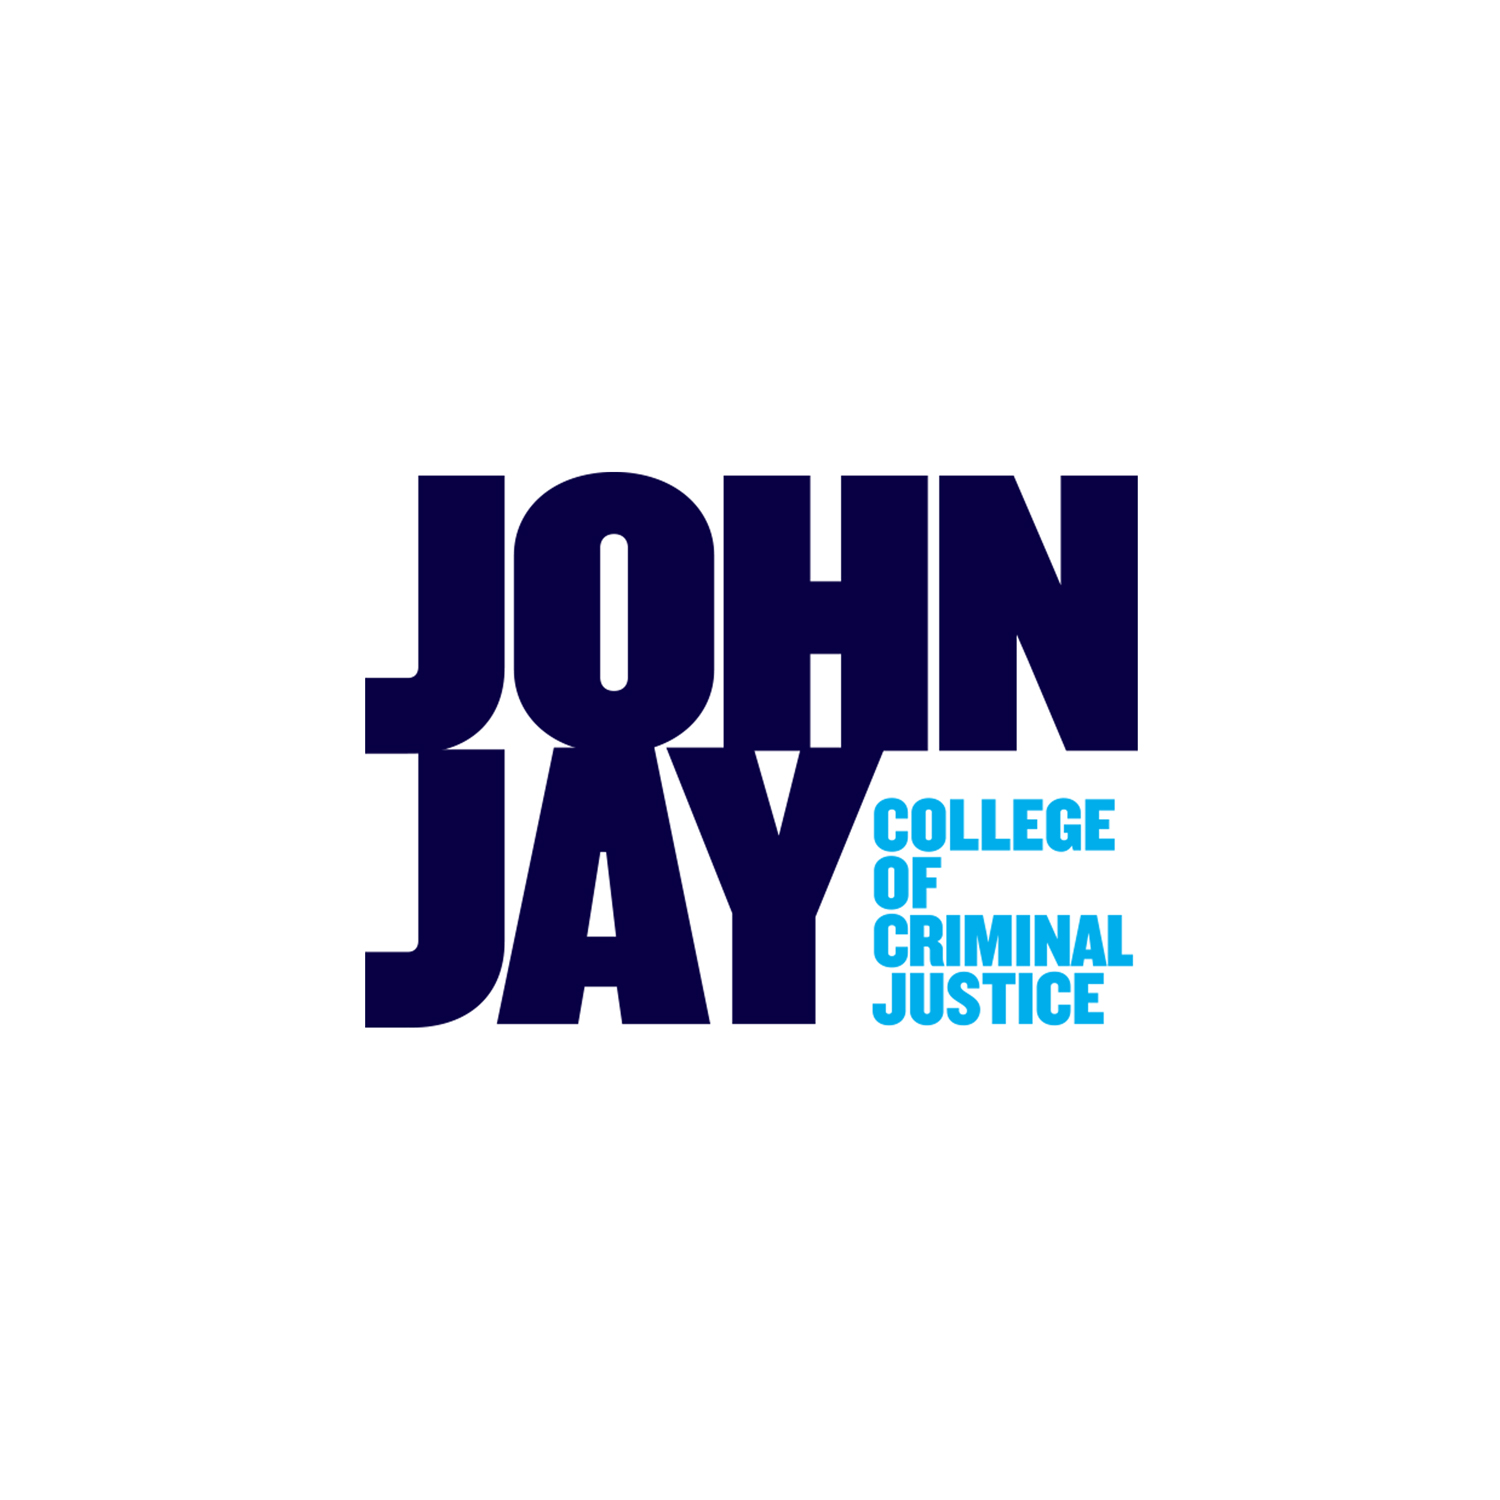 johnjaylogo.jpg